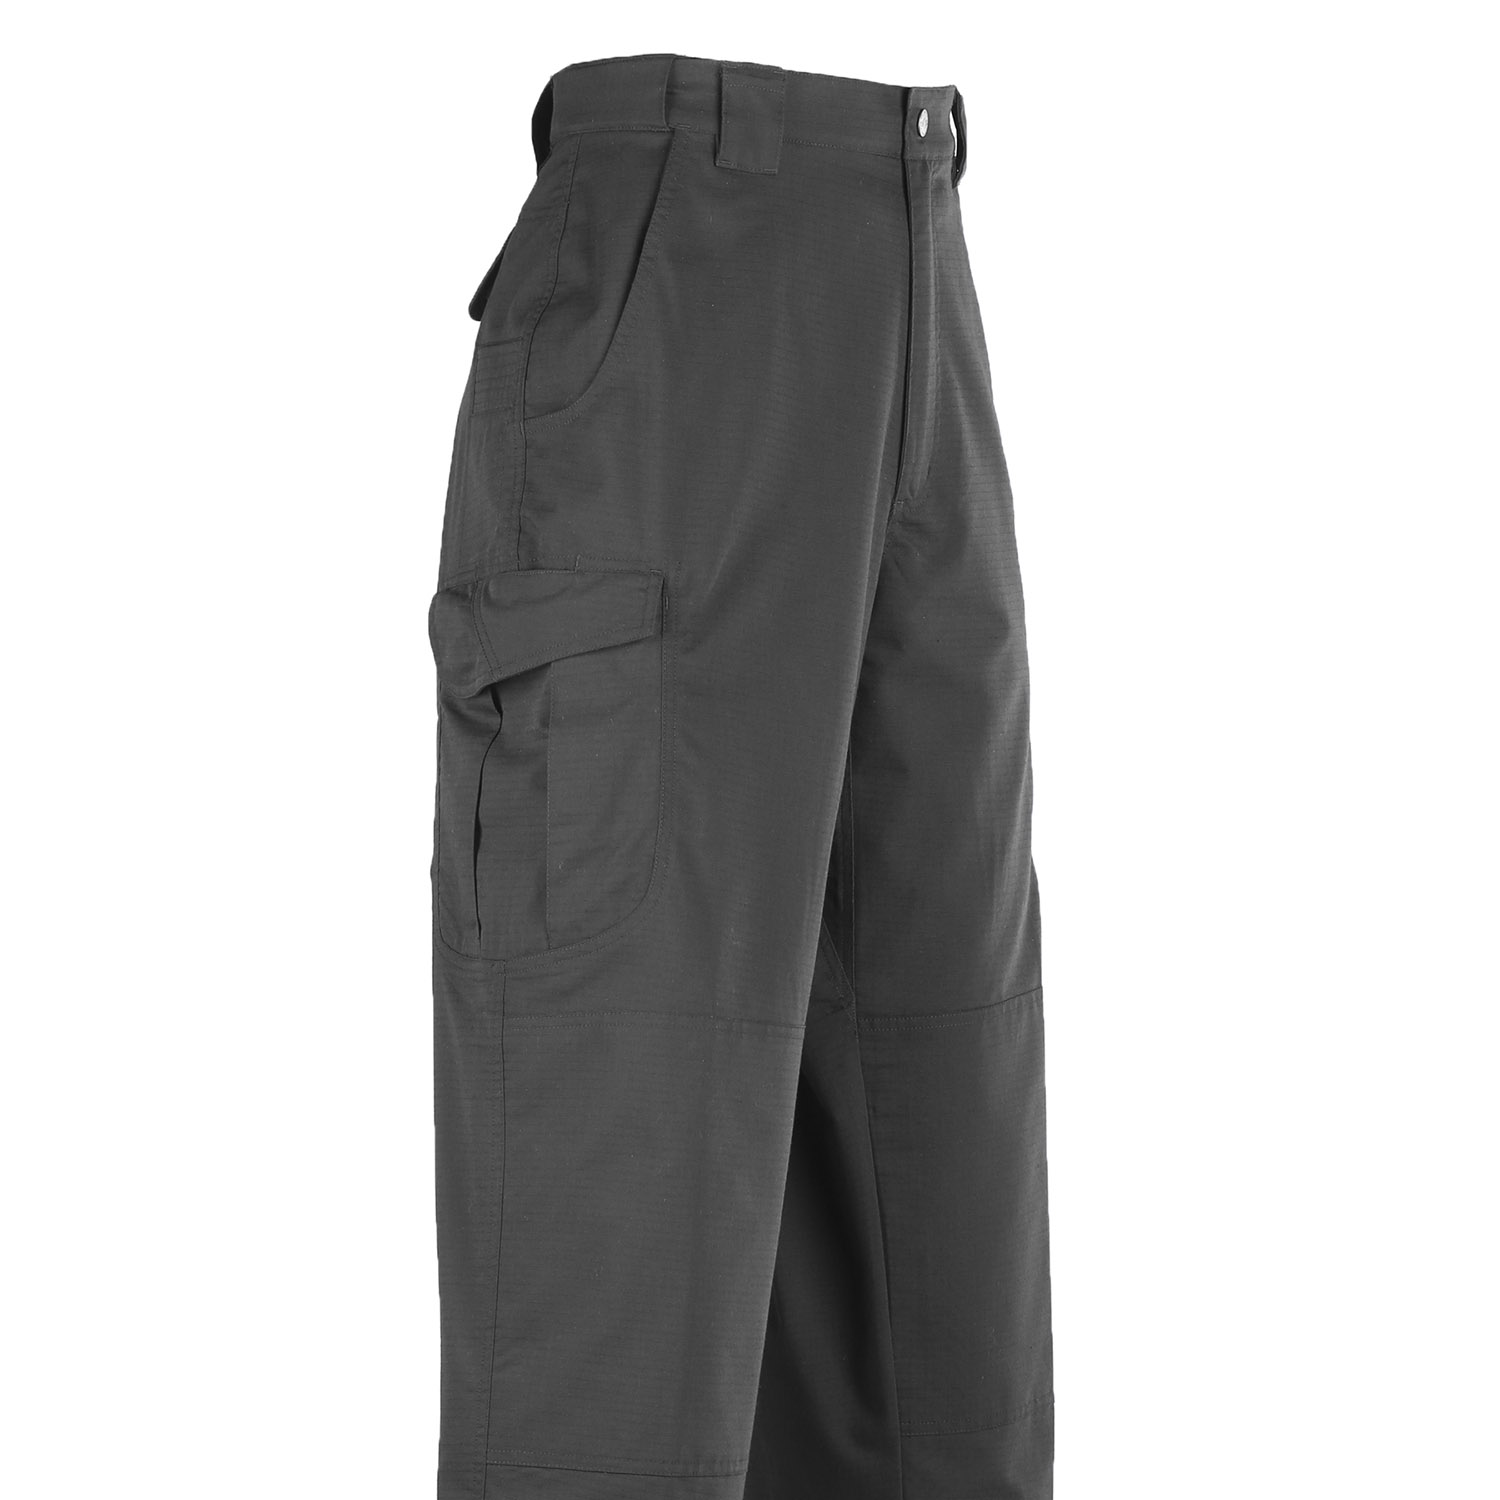 TRU-SPEC 24-7 Ascent Pants